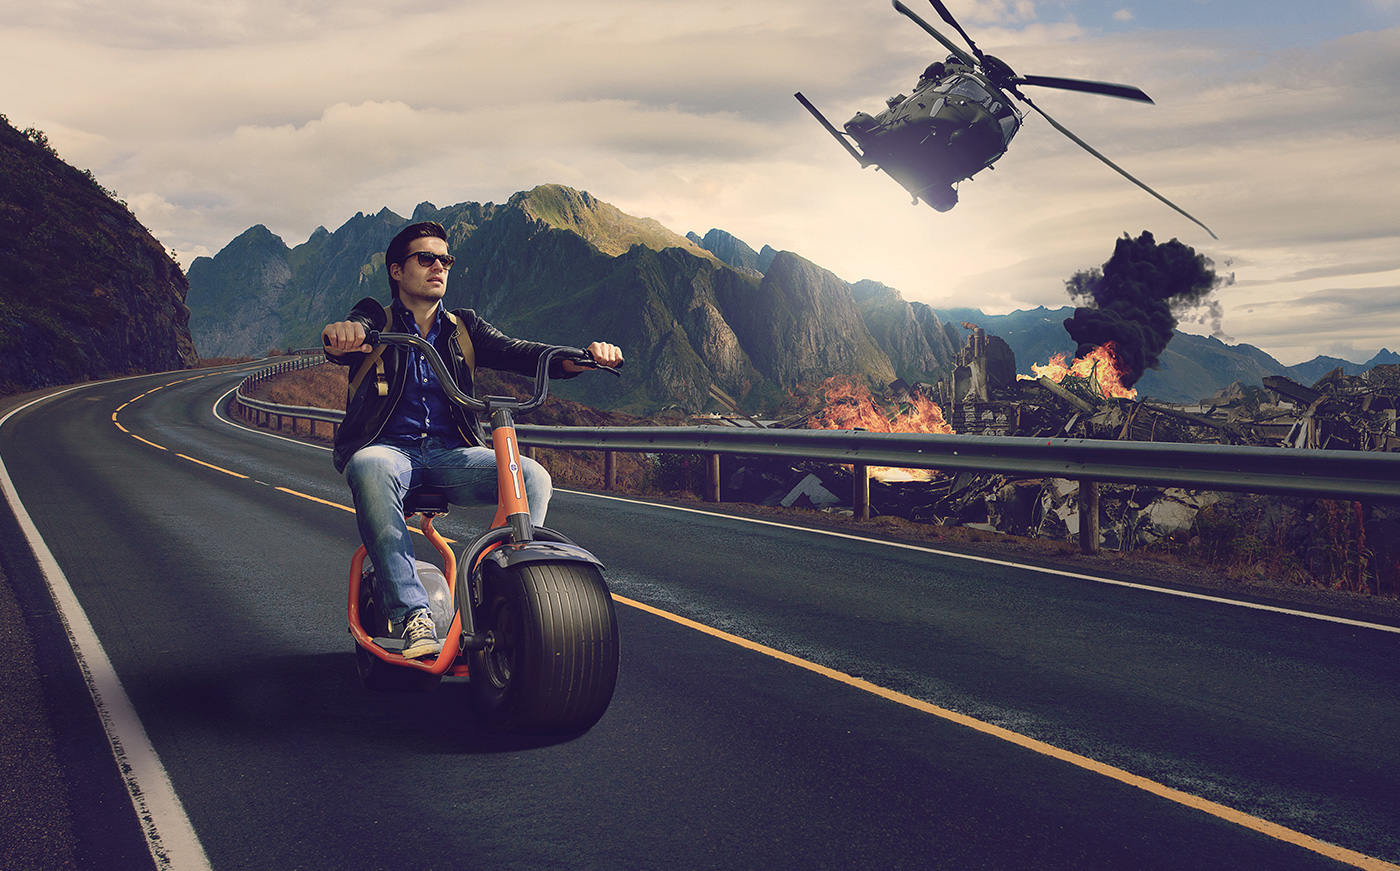 photoshop video manipulation epic Scooter road tutorial